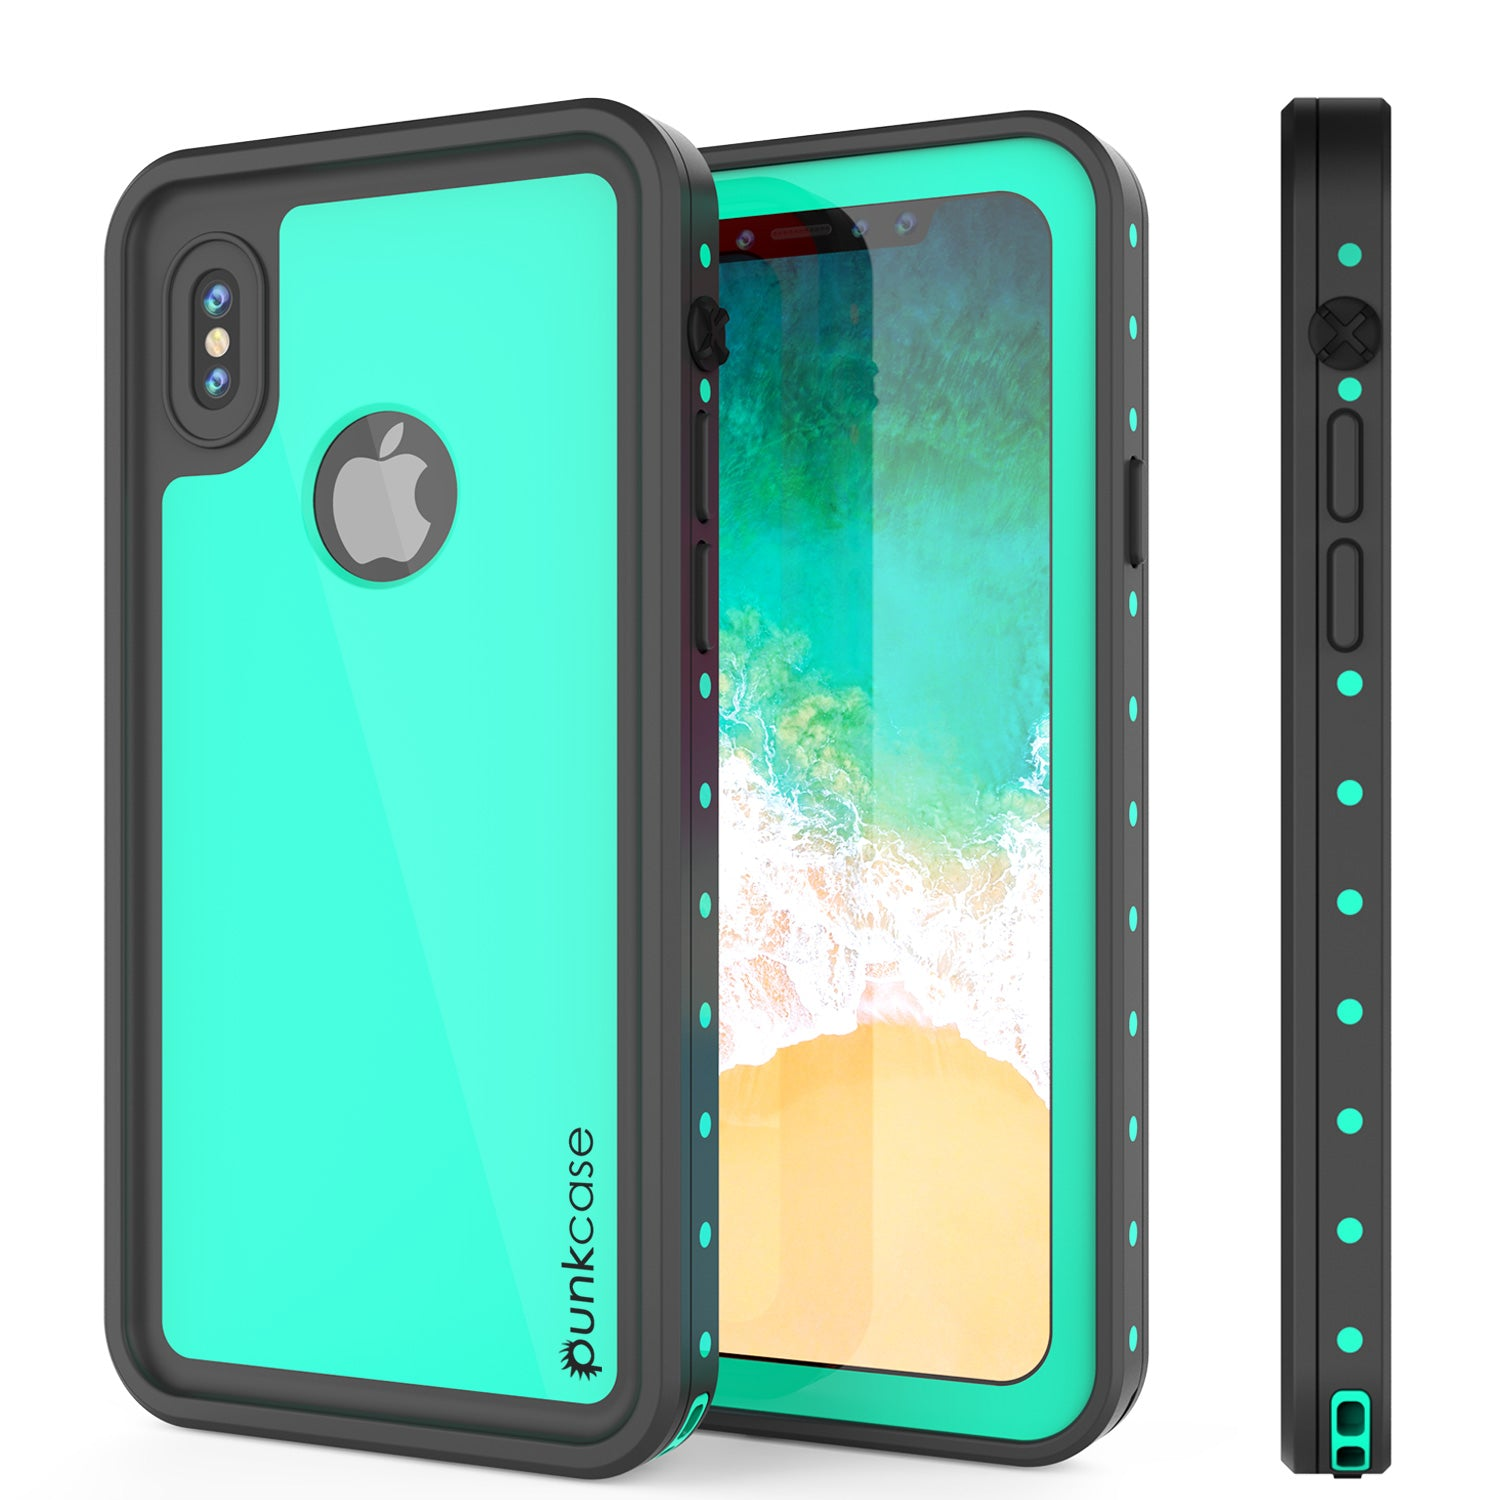 iPhone X Waterproof IP68 Case, Punkcase [Teal] [StudStar Series] [Slim Fit] [Dirtproof]